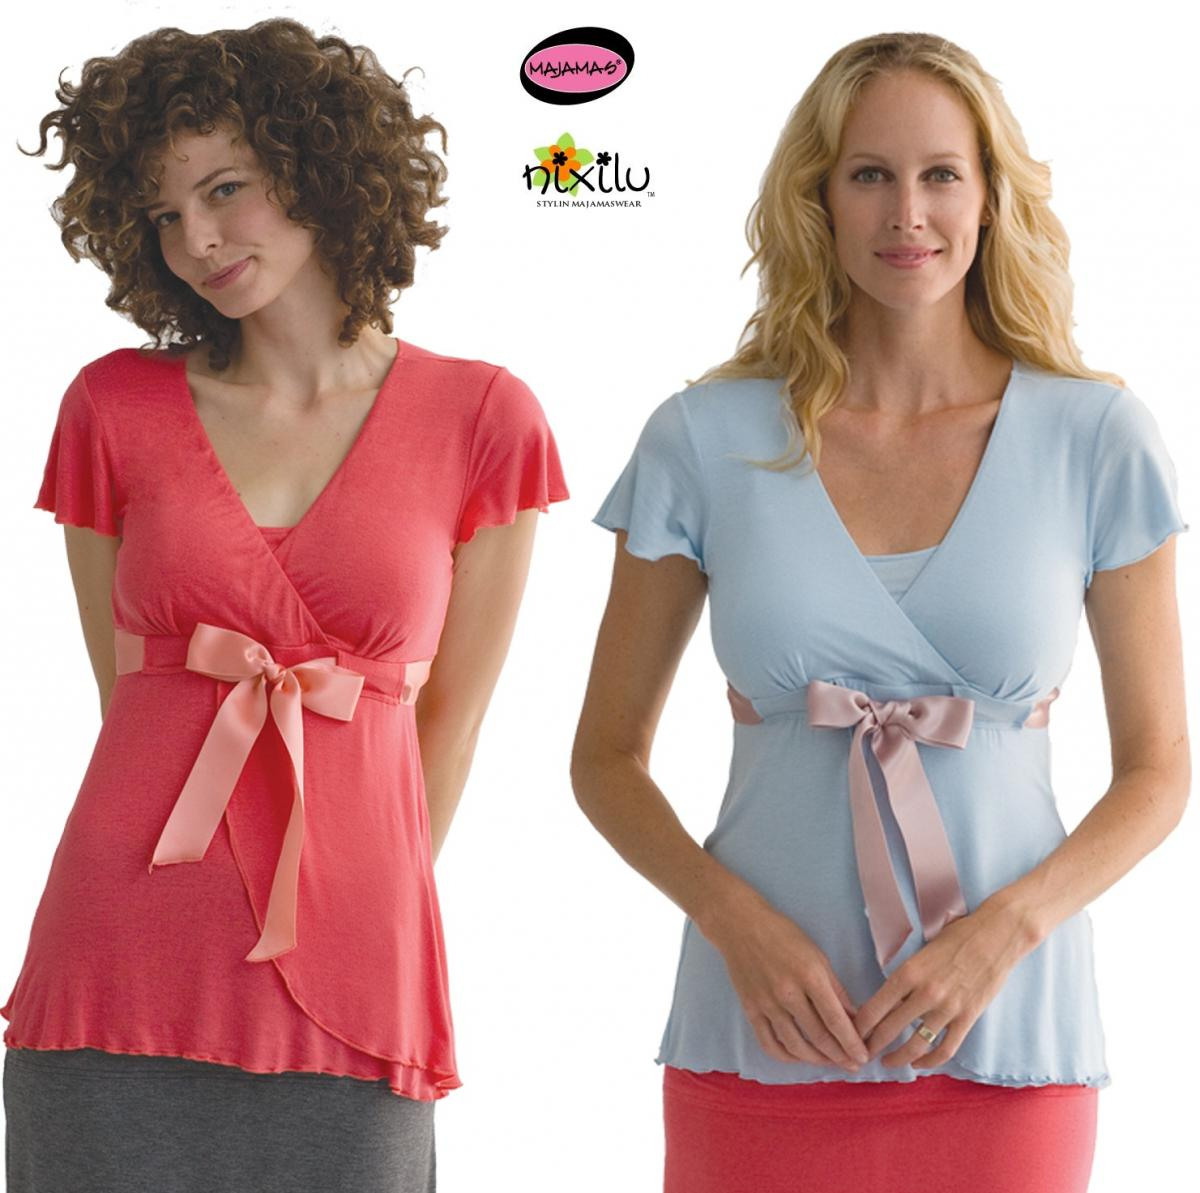 majamas-popsicle-nursing-top-all.jpg